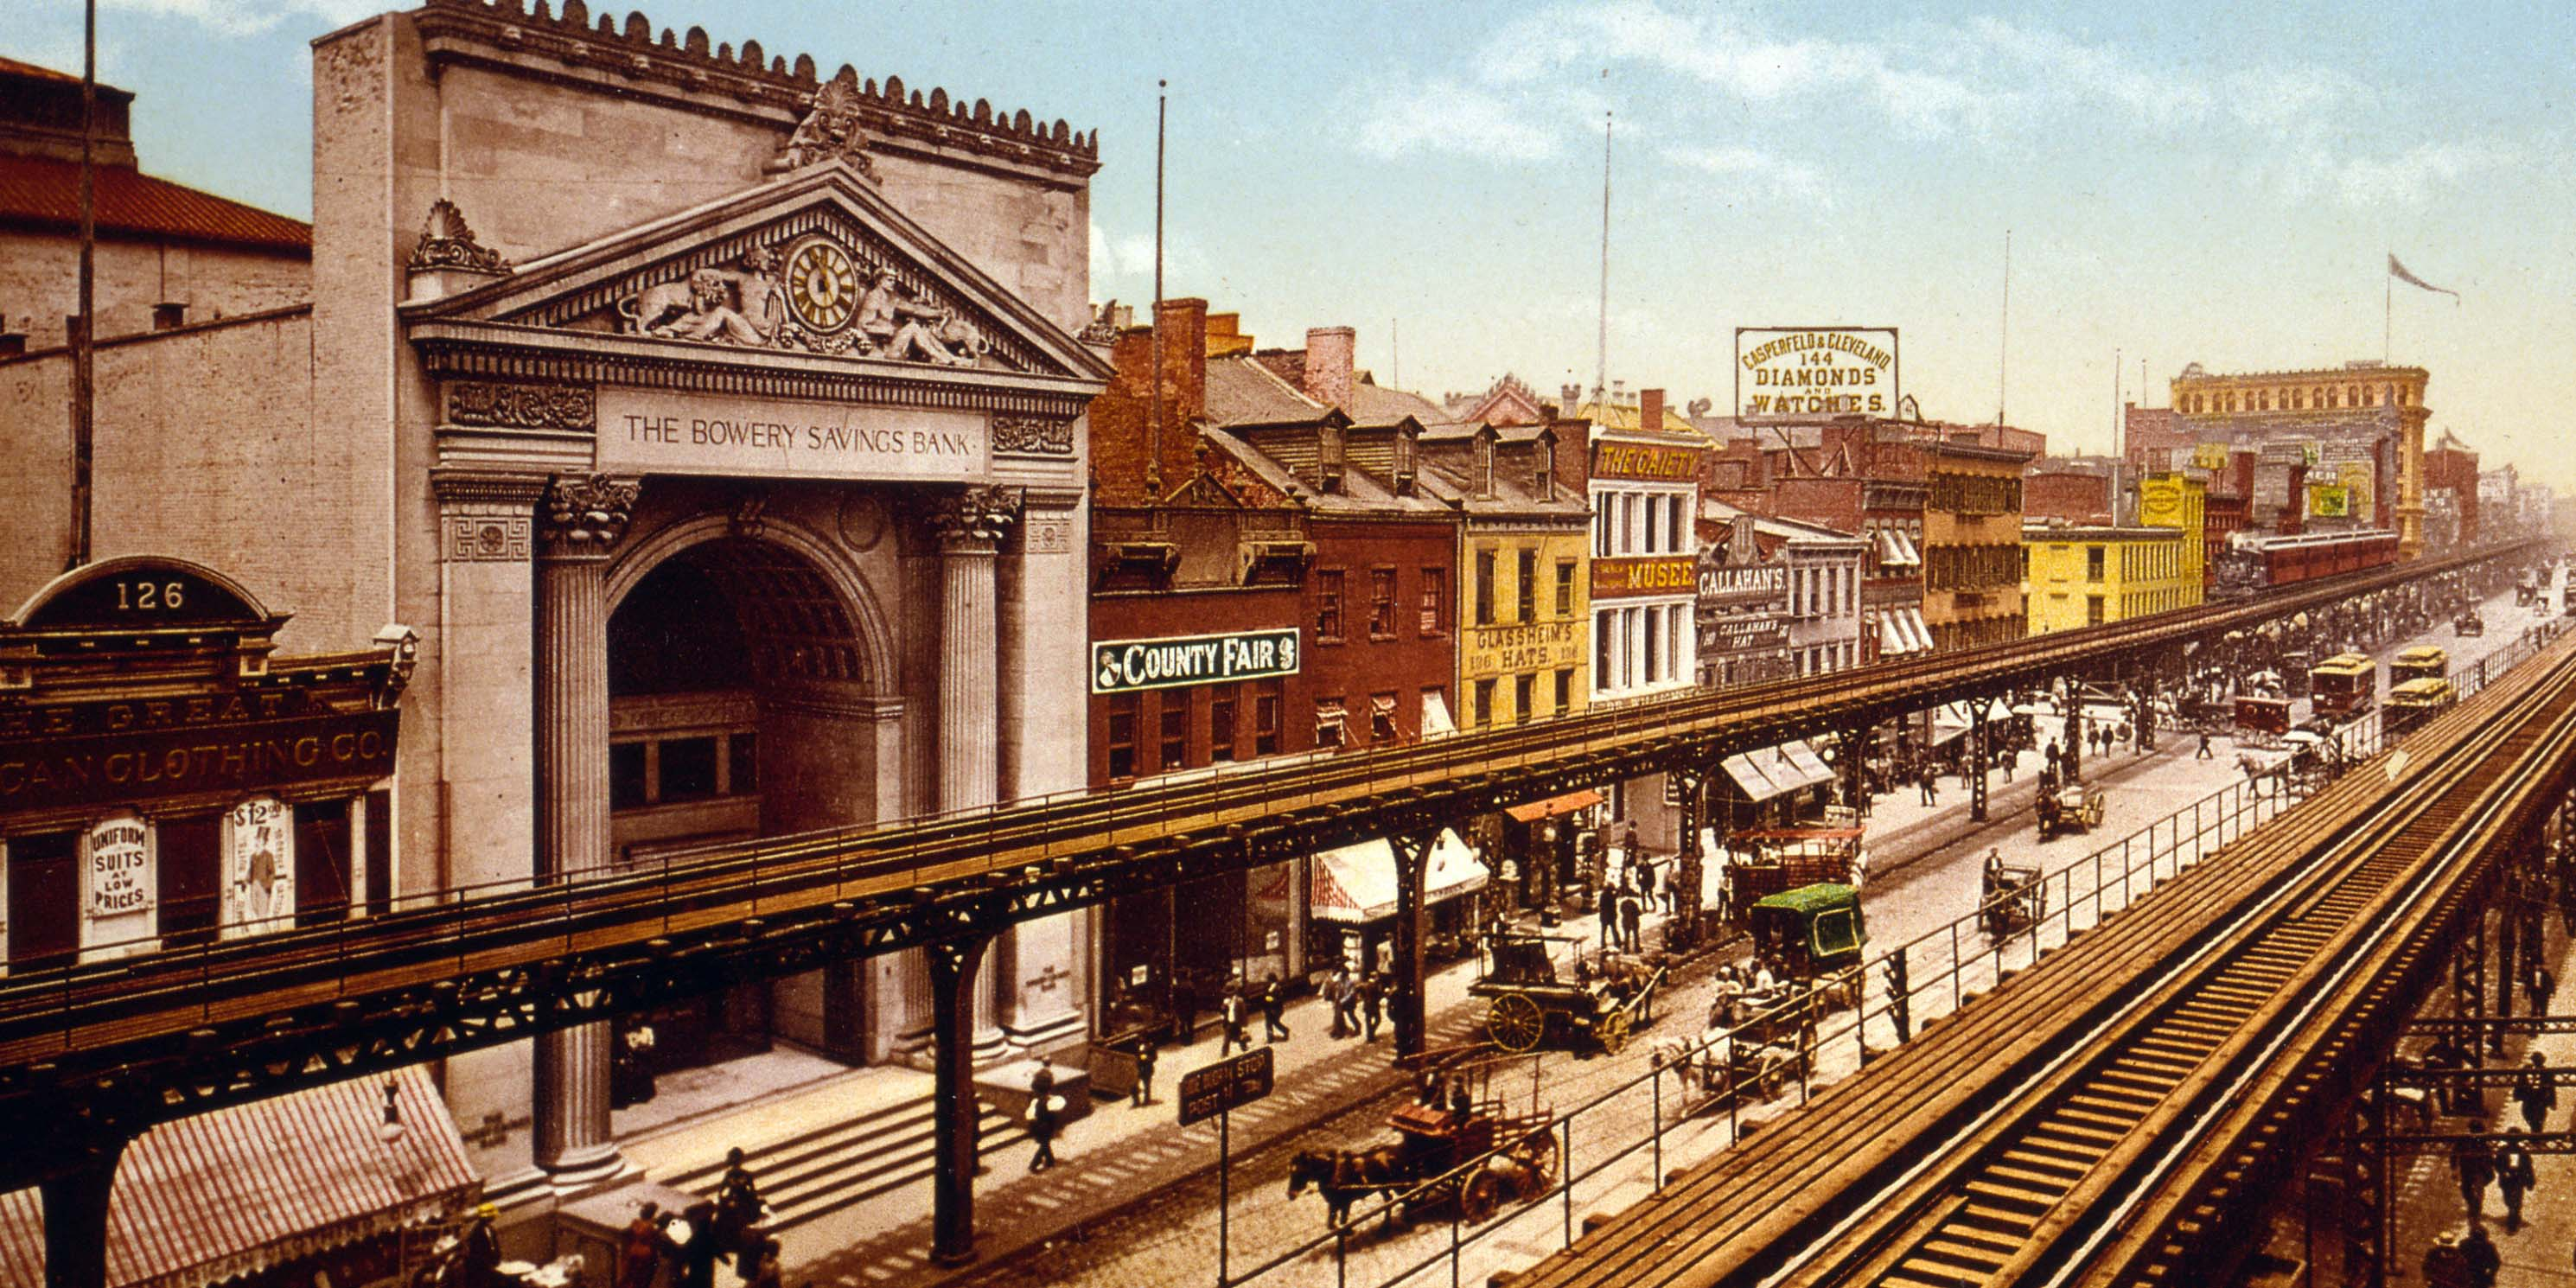 Colorized print of the Bowery around 1900.